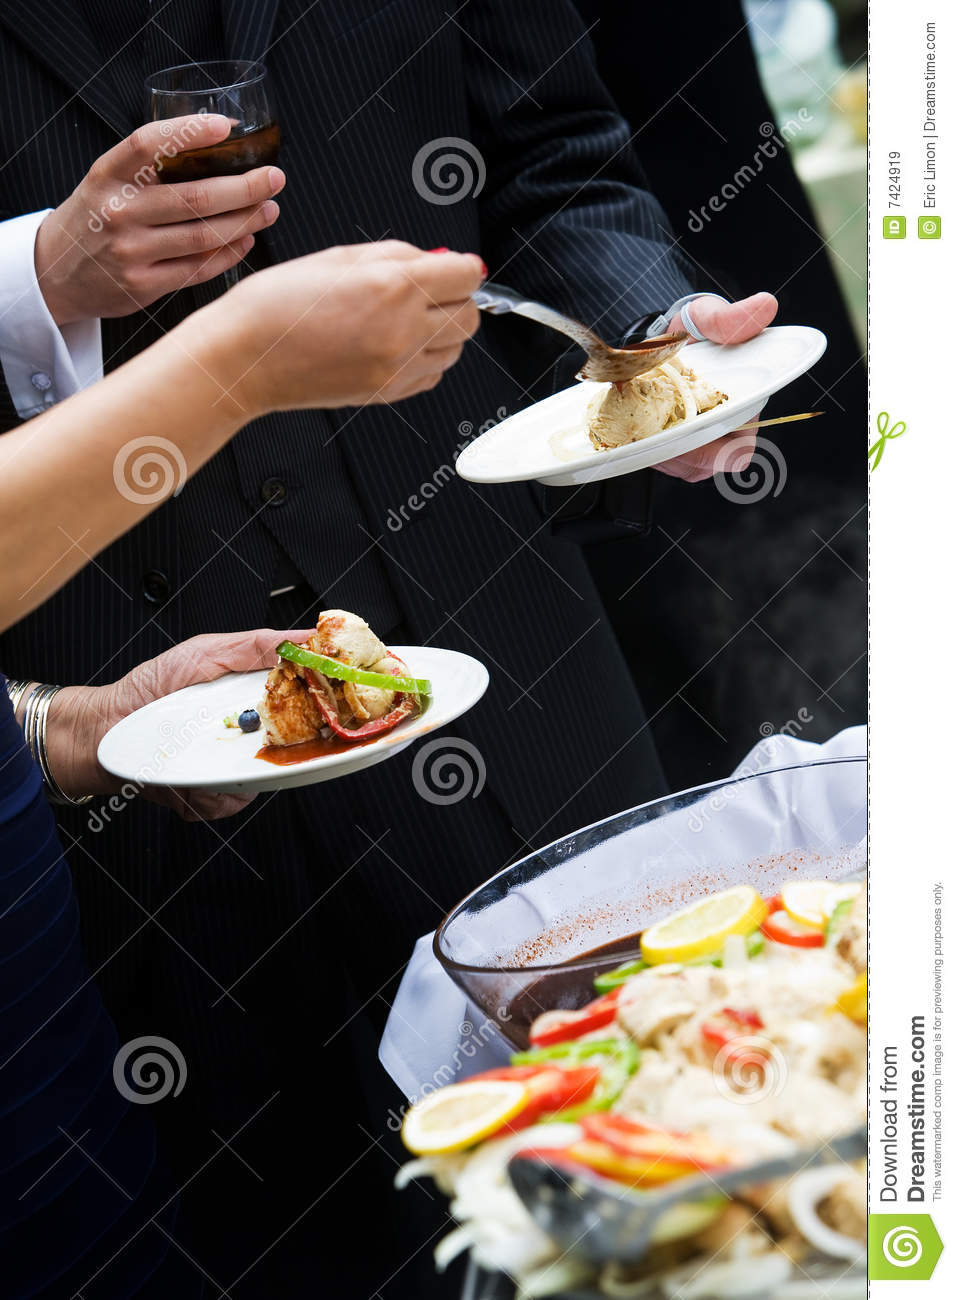 Appetizer during a catered party or event